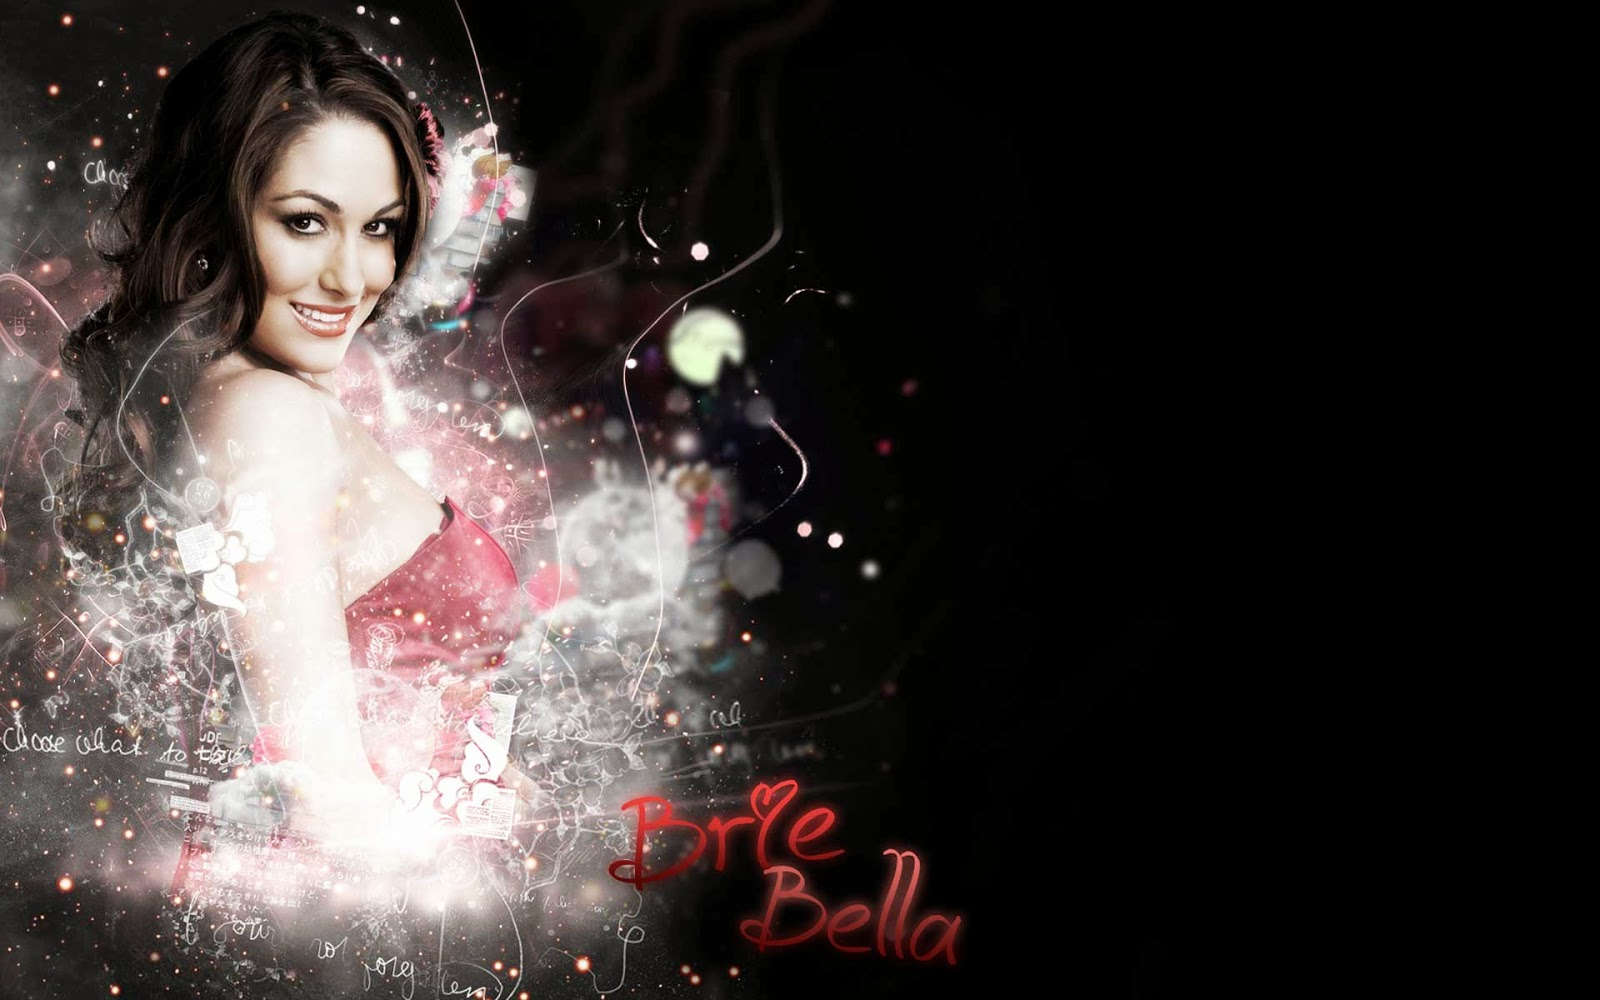 brie bella new wallpapers 12 brie bella new wallpapers 13 brie bella 1600x1000